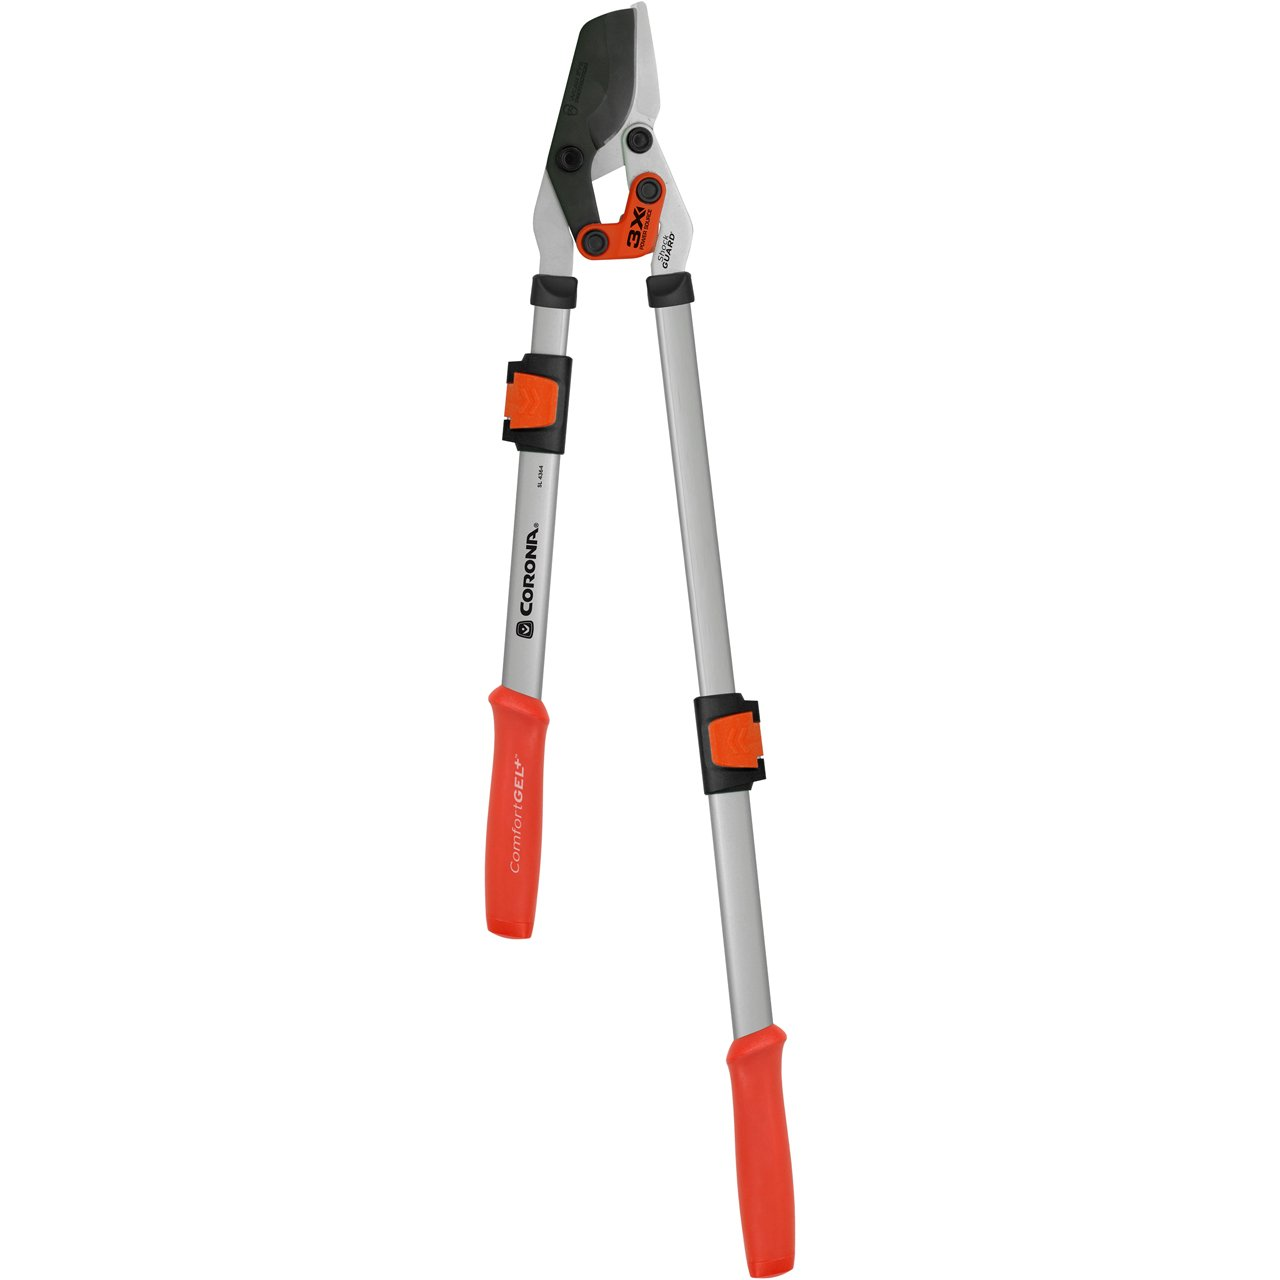 "Corona DualLINK with ComfortGEL Grip Extendable Heavy Duty Bypass Limb and Branch Lopper, Cuts Up to 1 3/4"", SL 4364"